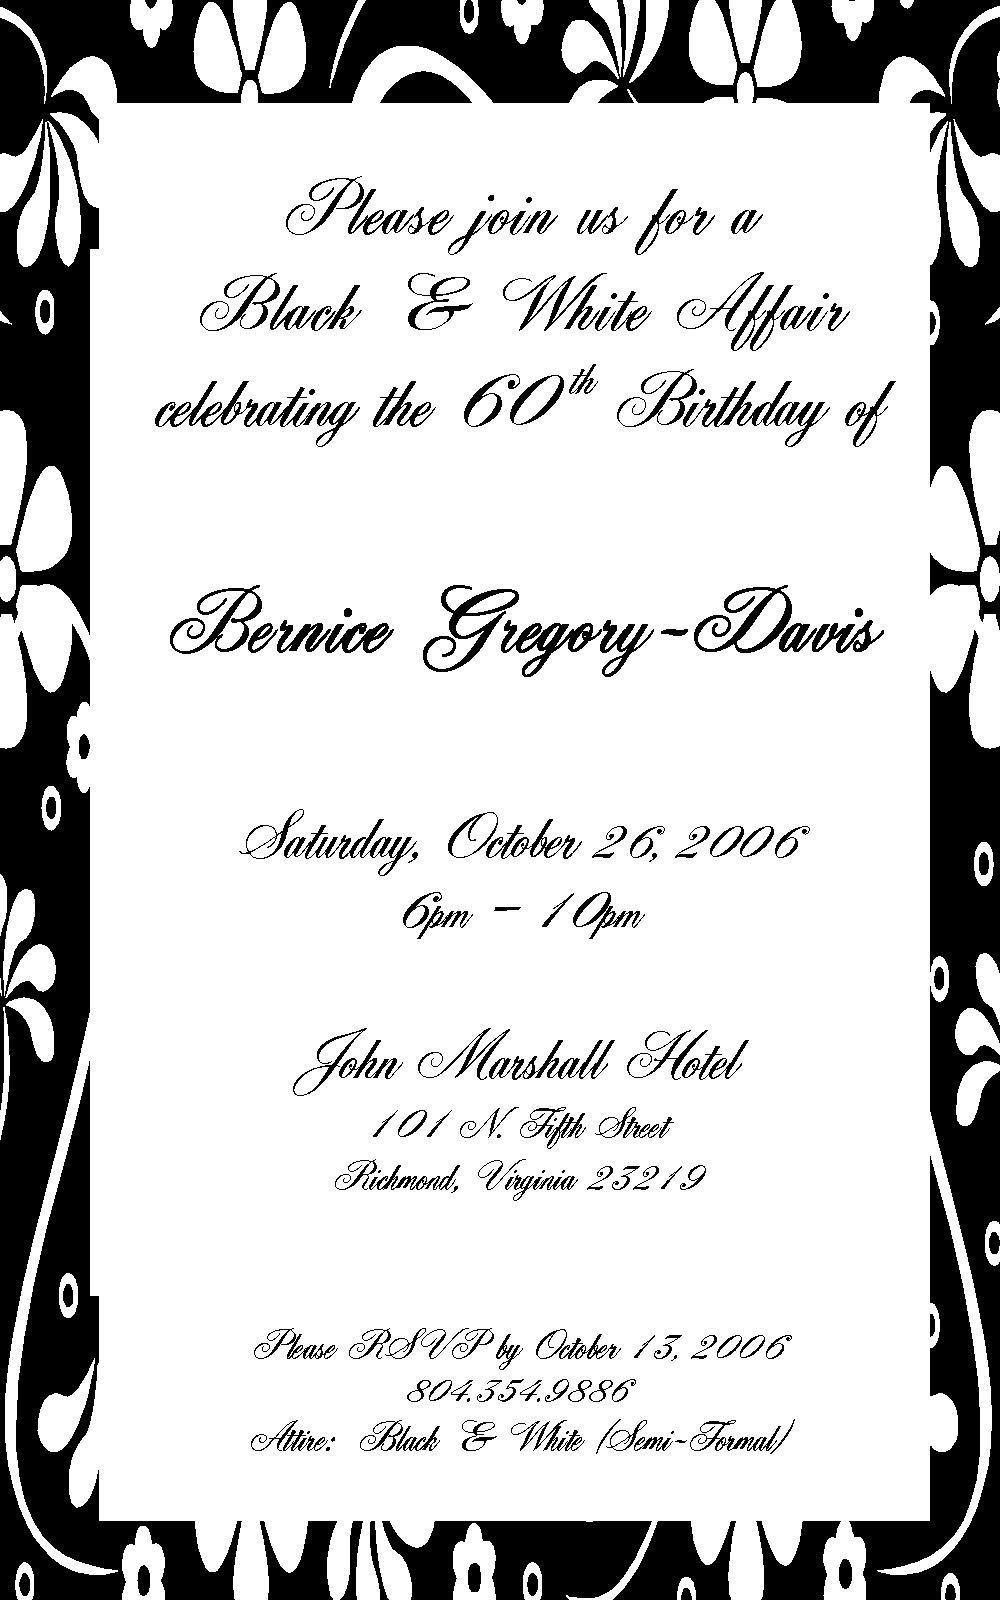 Birthday invitation sample party invitation pinterest dinner birthday invitation sample stopboris